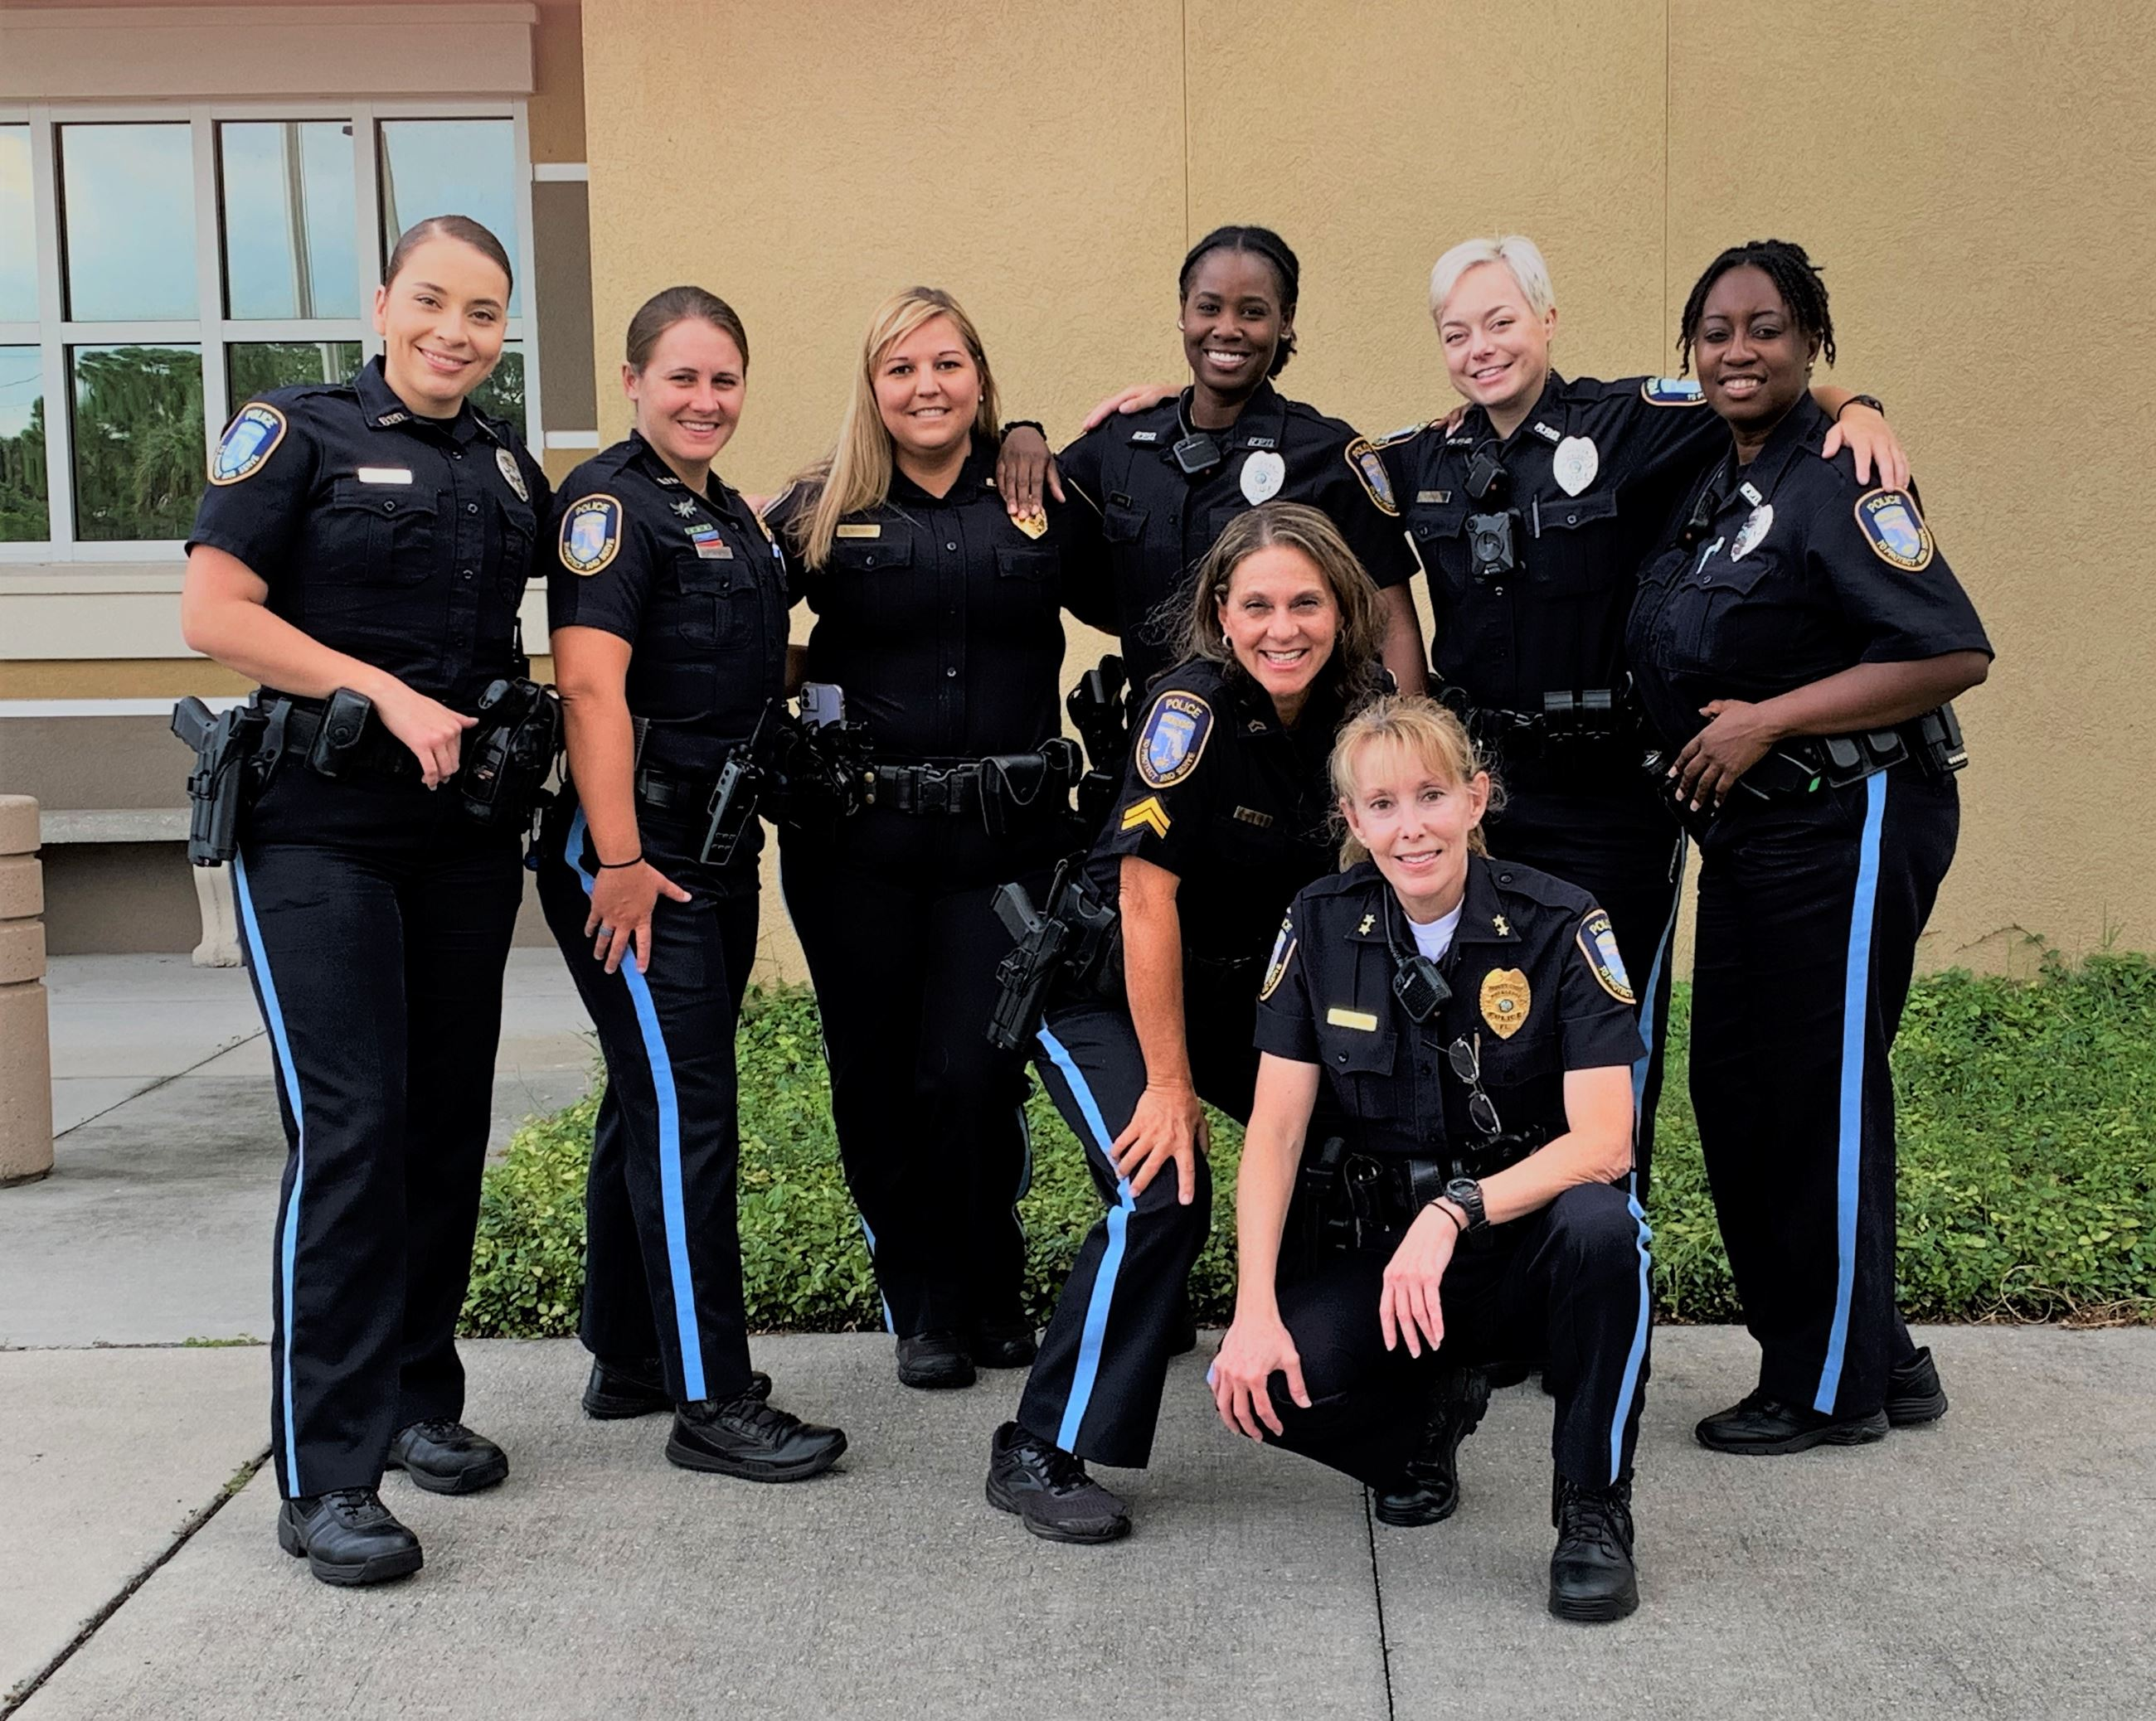 Female officers from Rockledge Police Department